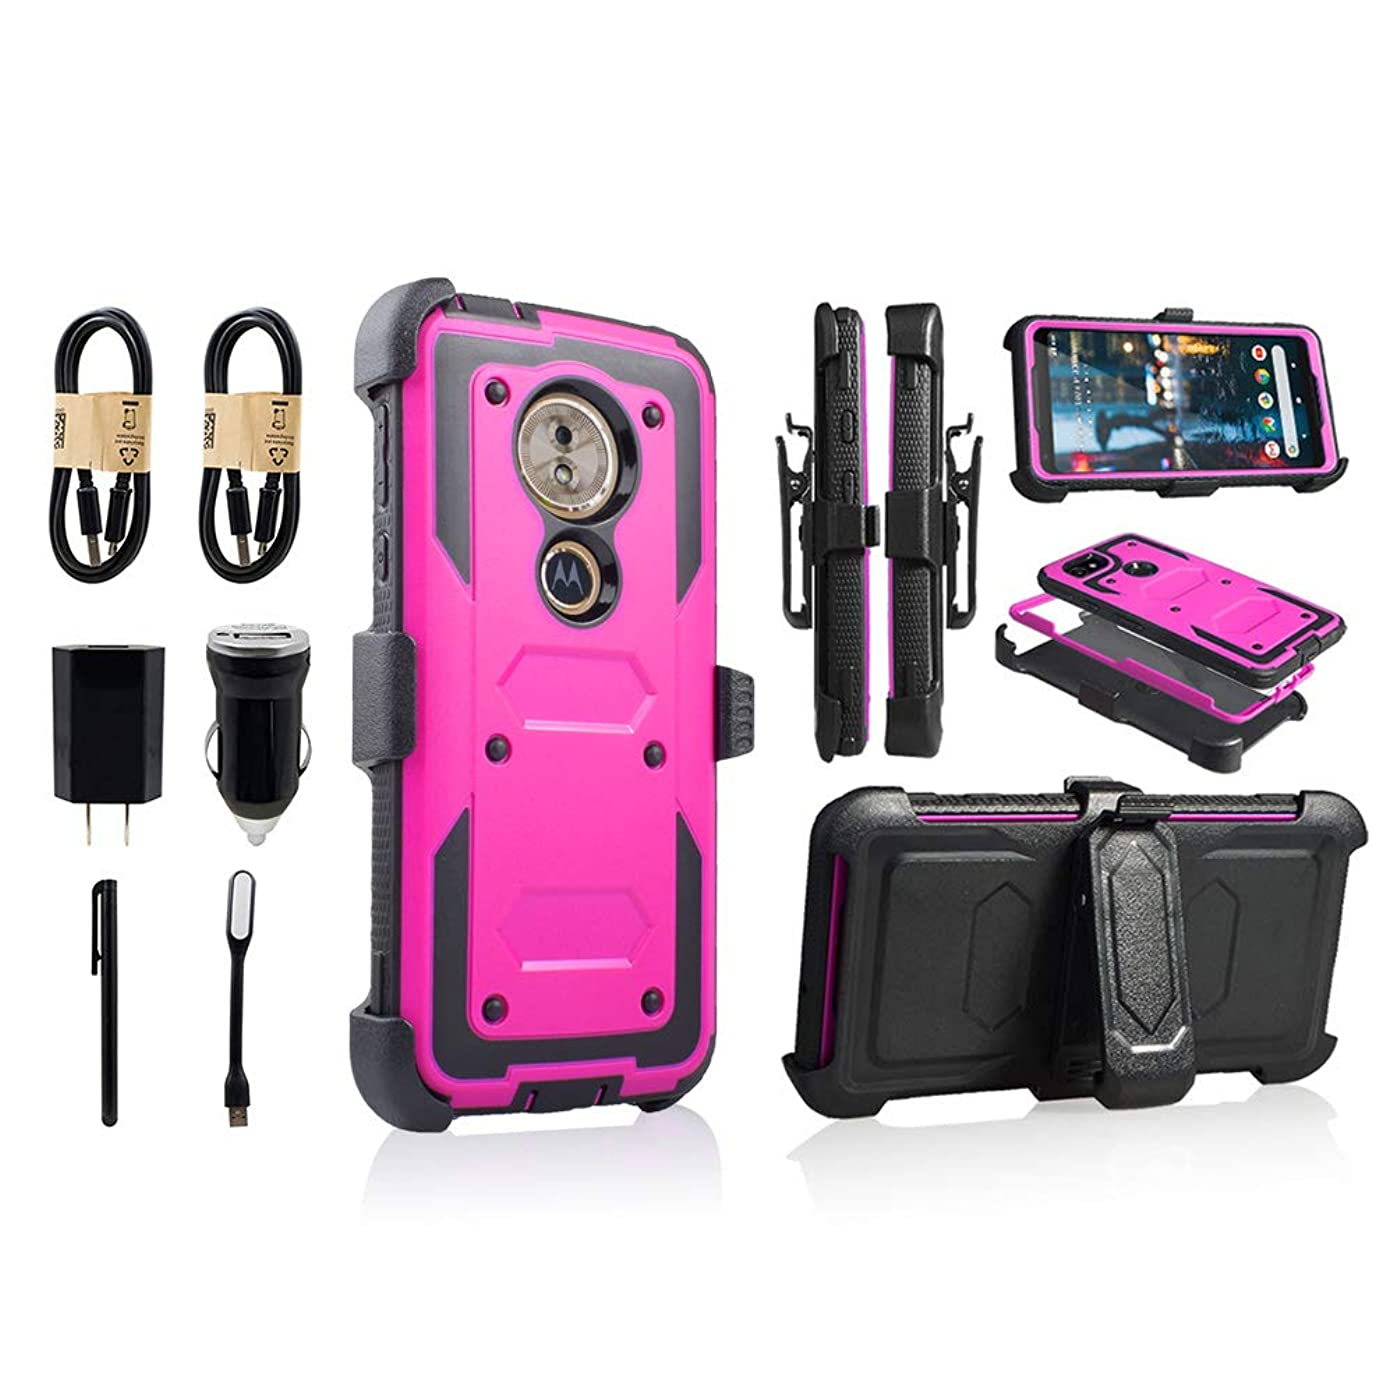 Motorola Moto G6 Play Case 2018, Moto G6 Forge Case, Heavy Duty Armor Shockproof Protection Case Cover with Belt Swivel Clip Kickstand [Value Bundle] (Purple)